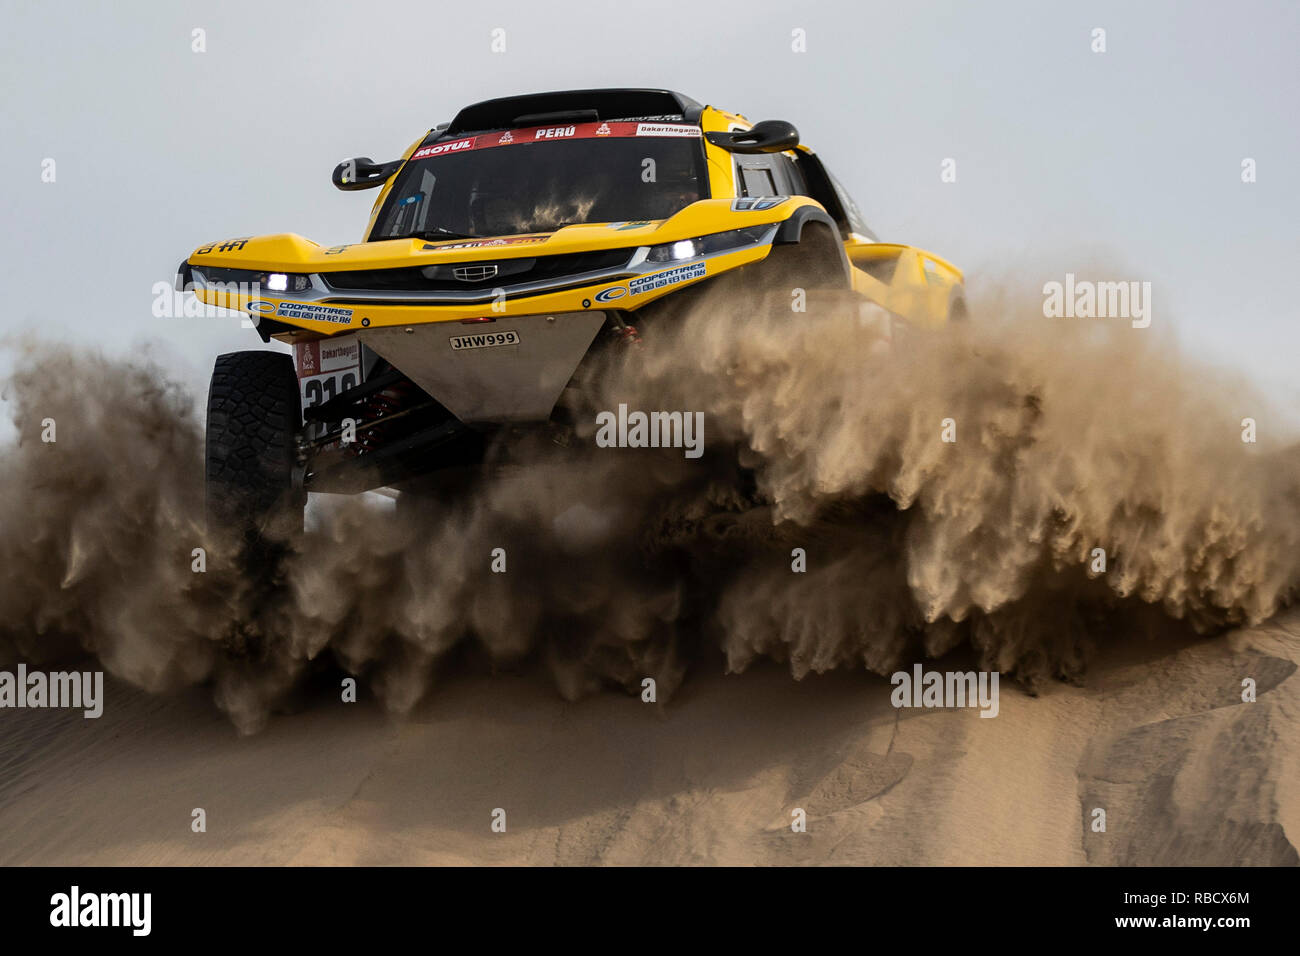 Ica. 8th Jan, 2019. Chinese driver Han Wei and co-driver Liao Min of Geely auto team compete during the 2nd stage of the 2019 Dakar Rally Race in Peru, Jan. 8, 2019. Han and Liao finished the 2nd stage with 11 hours 43 minutes and 07 seconds. Credit: Li Ming/Xinhua/Alamy Live News - Stock Image